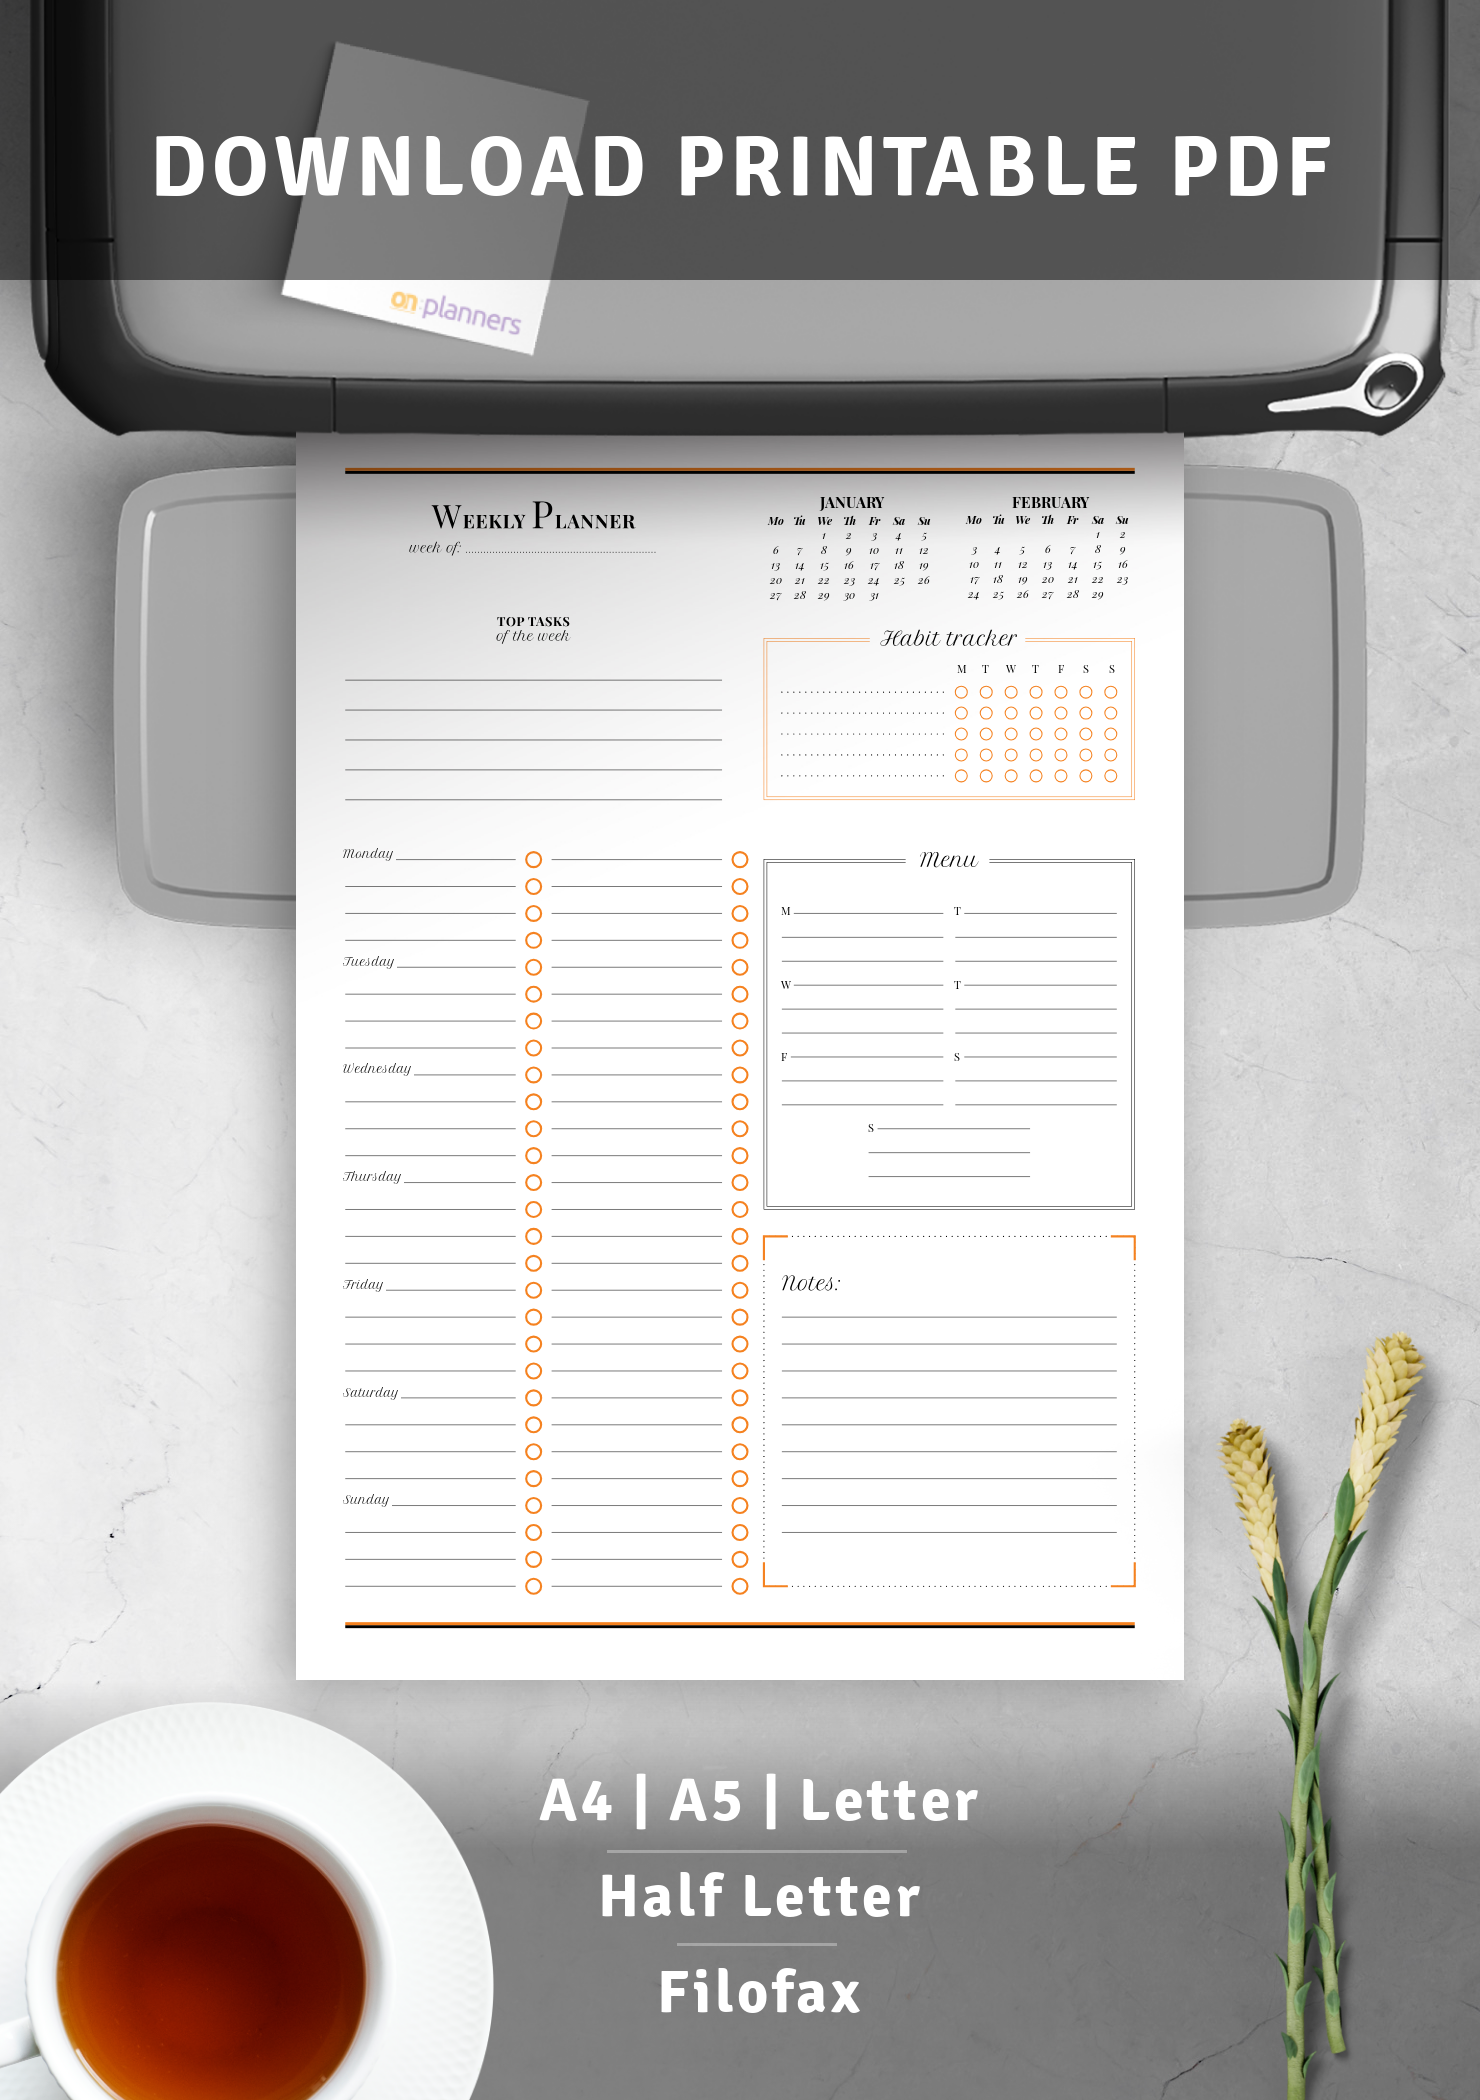 Download Printable Weekly Planner With Habit Tracker Pdf